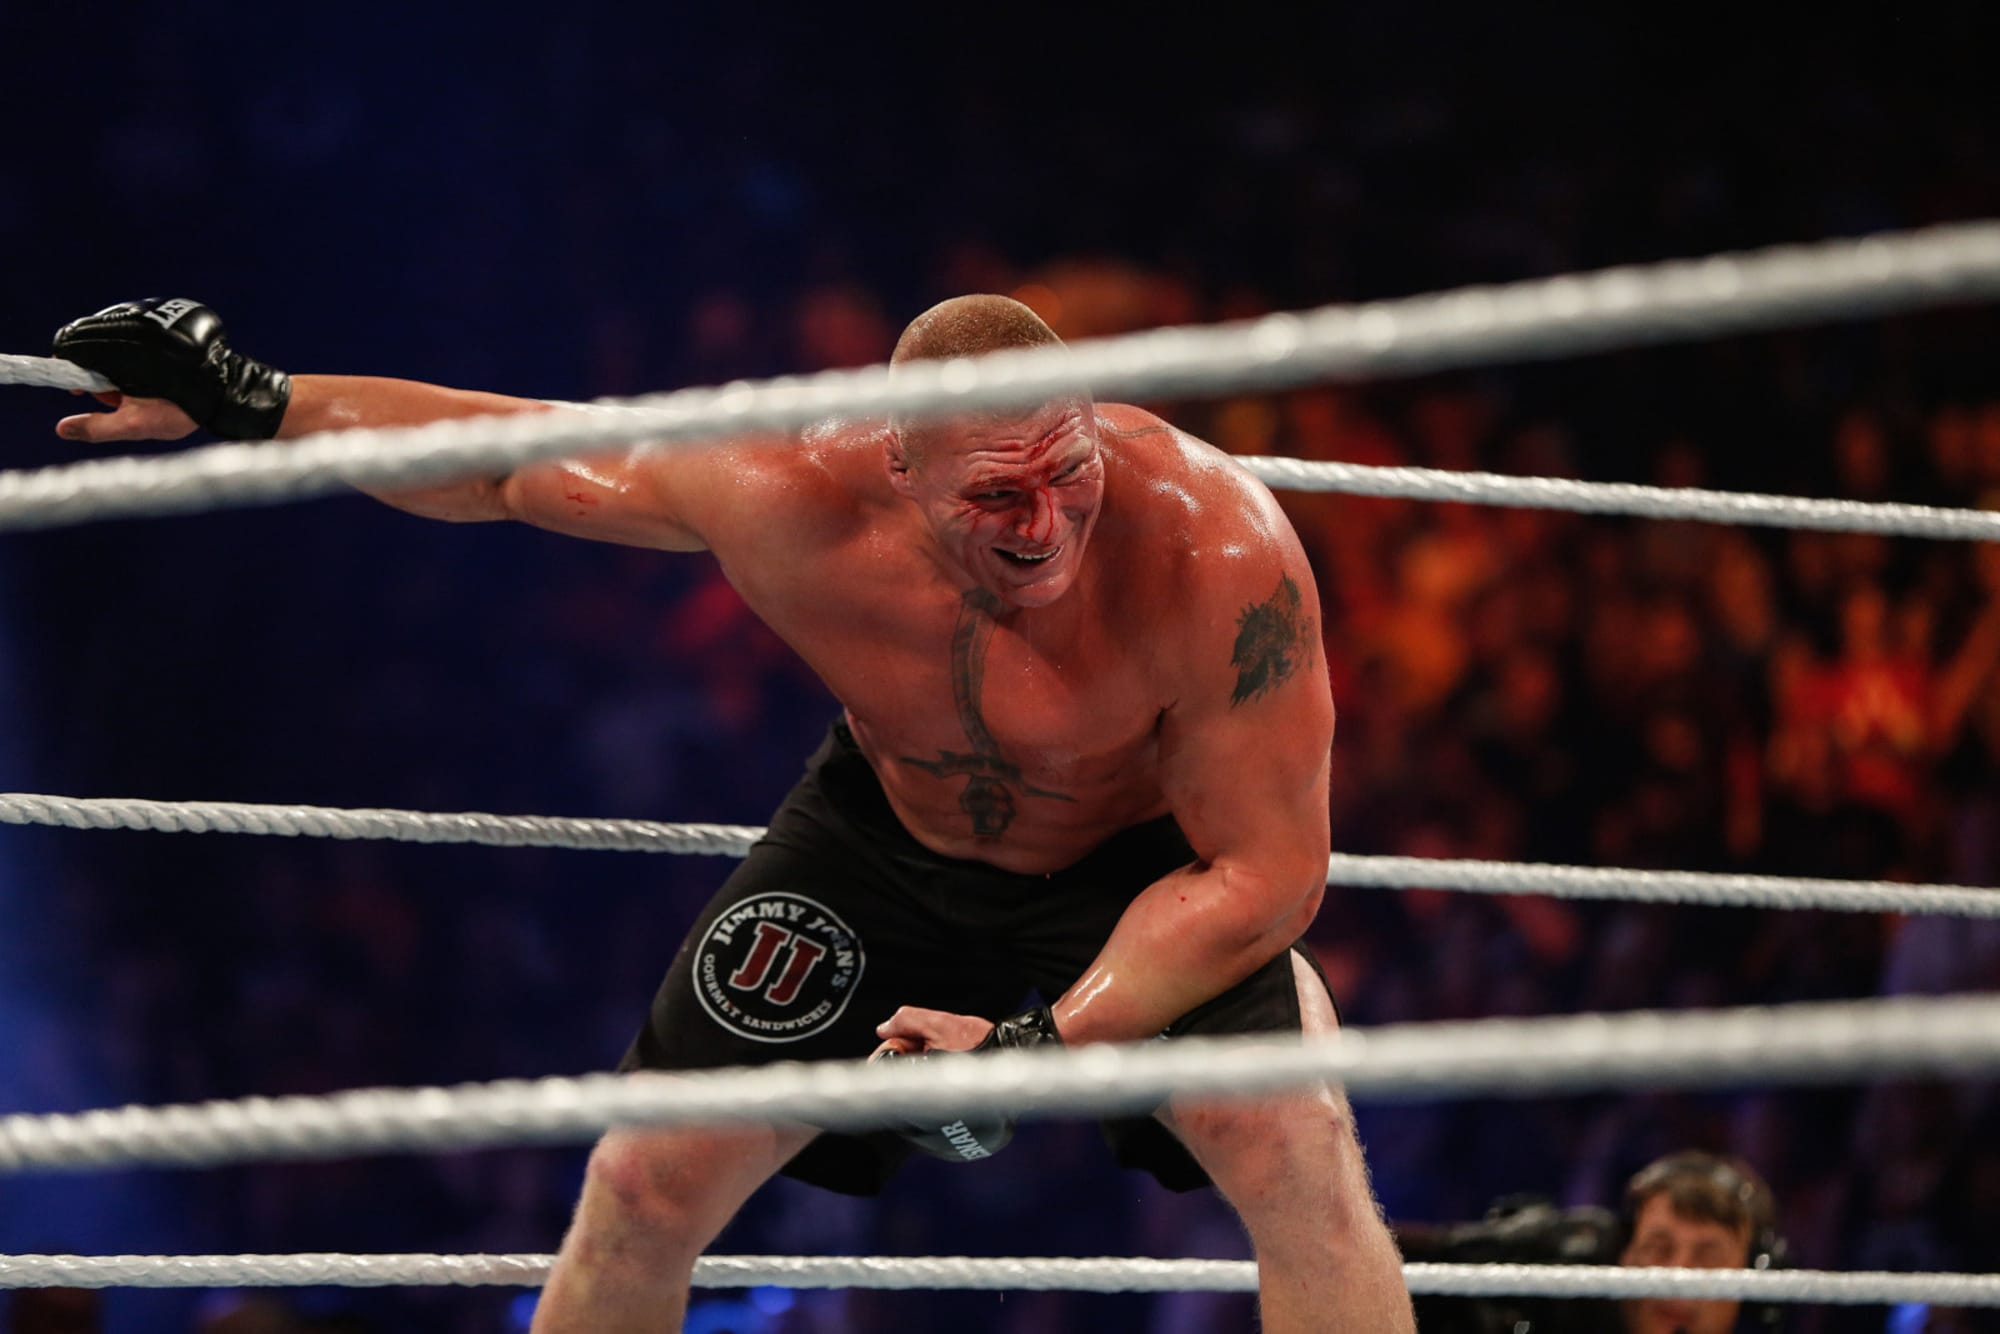 WWE: Brock Lesnar should stay away from Drew McIntyre